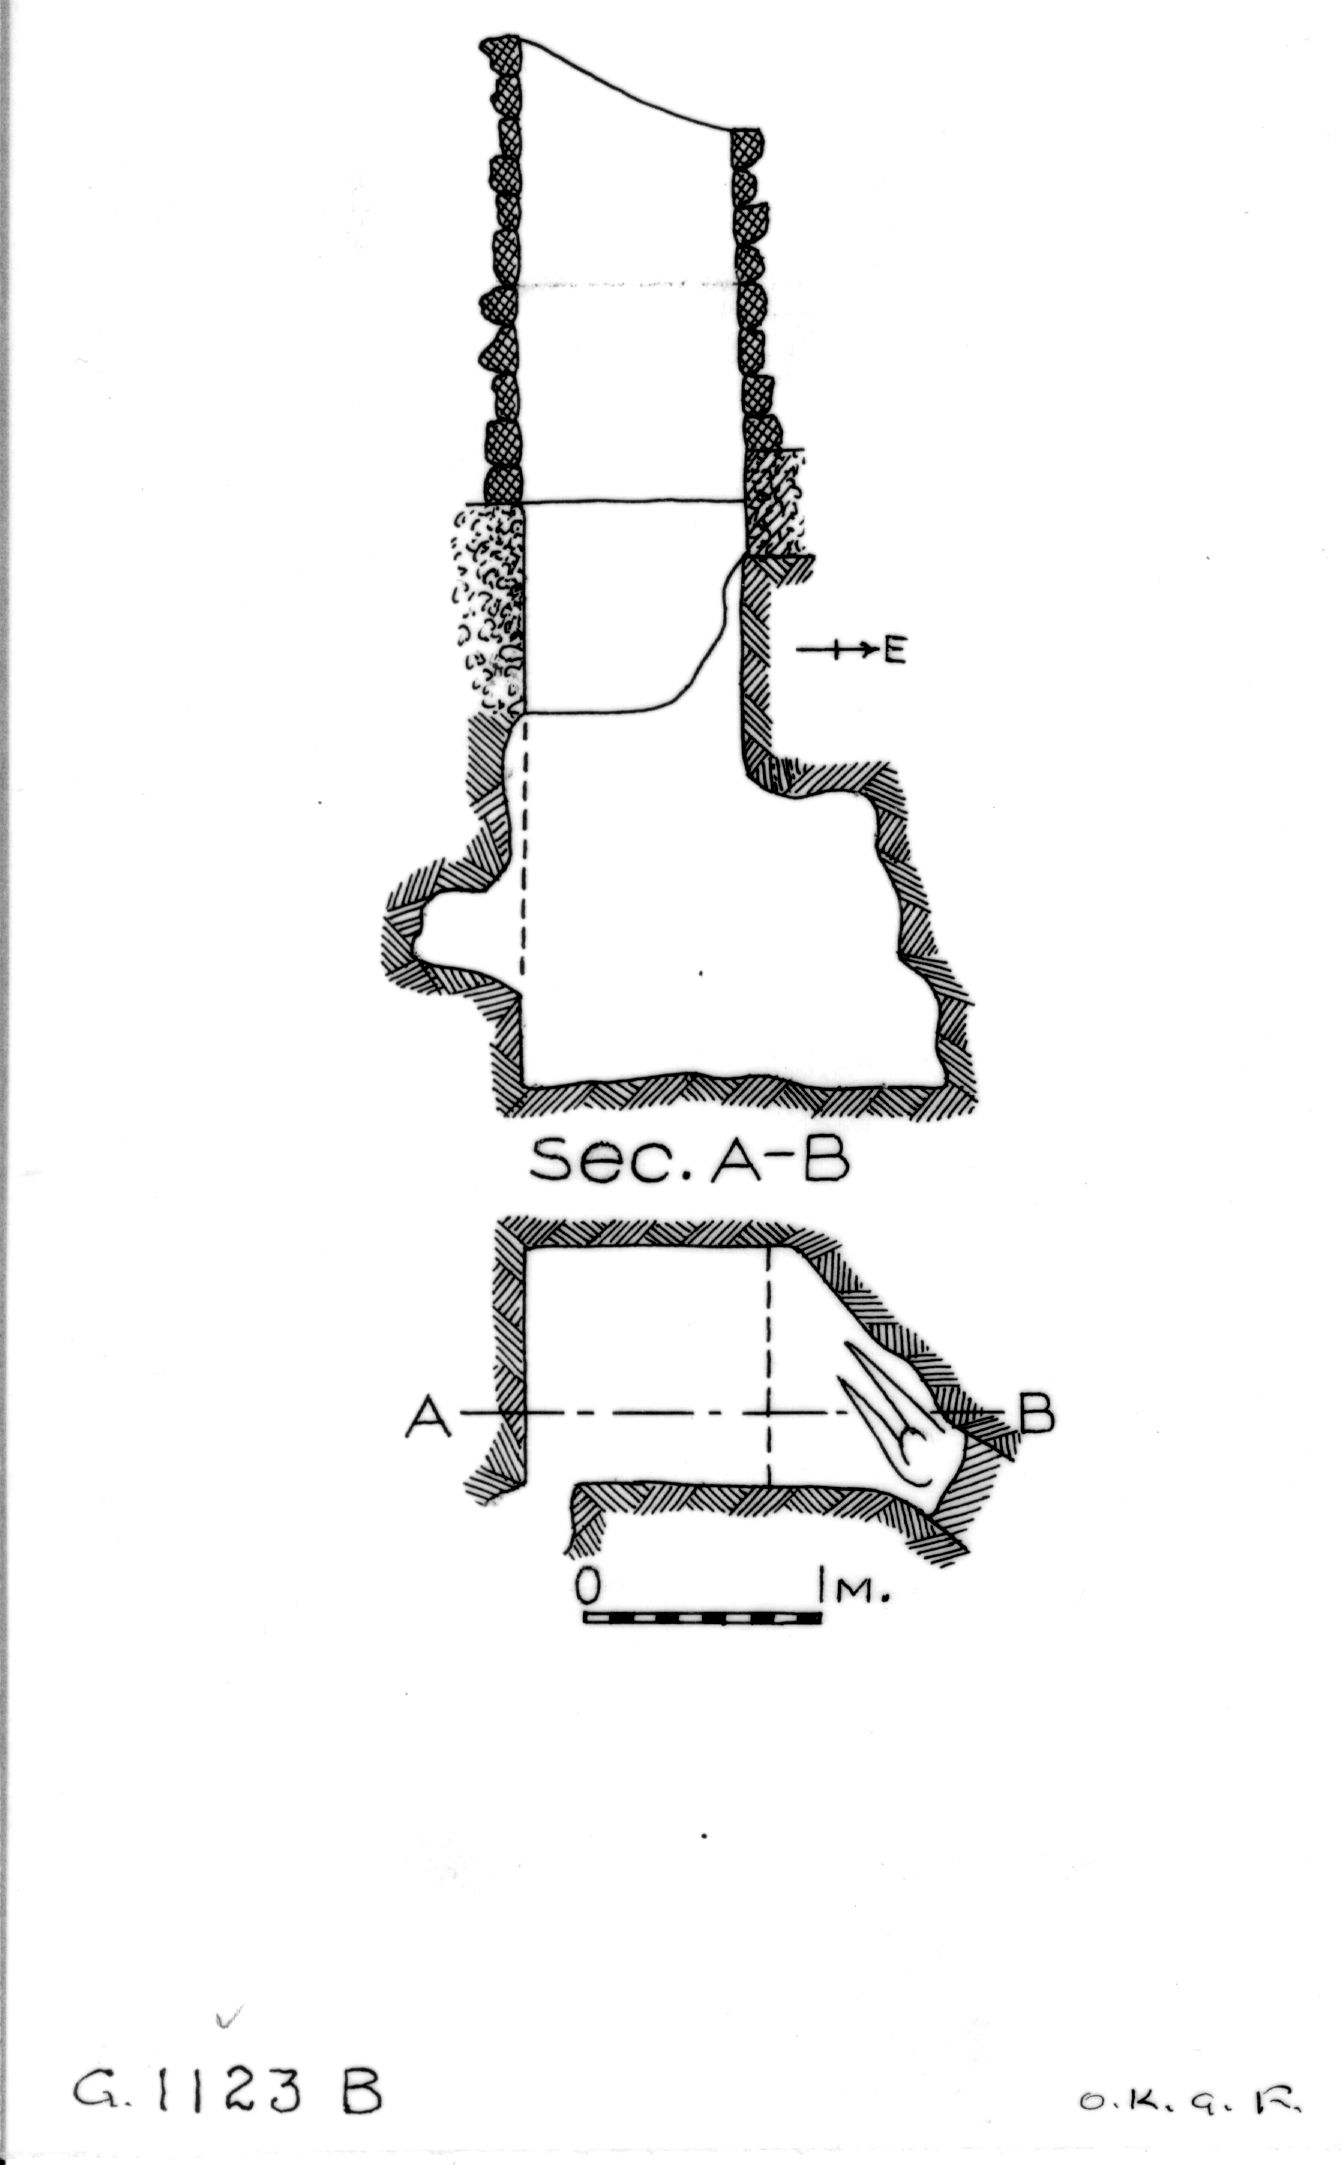 Maps and plans: G 1123, Shaft B